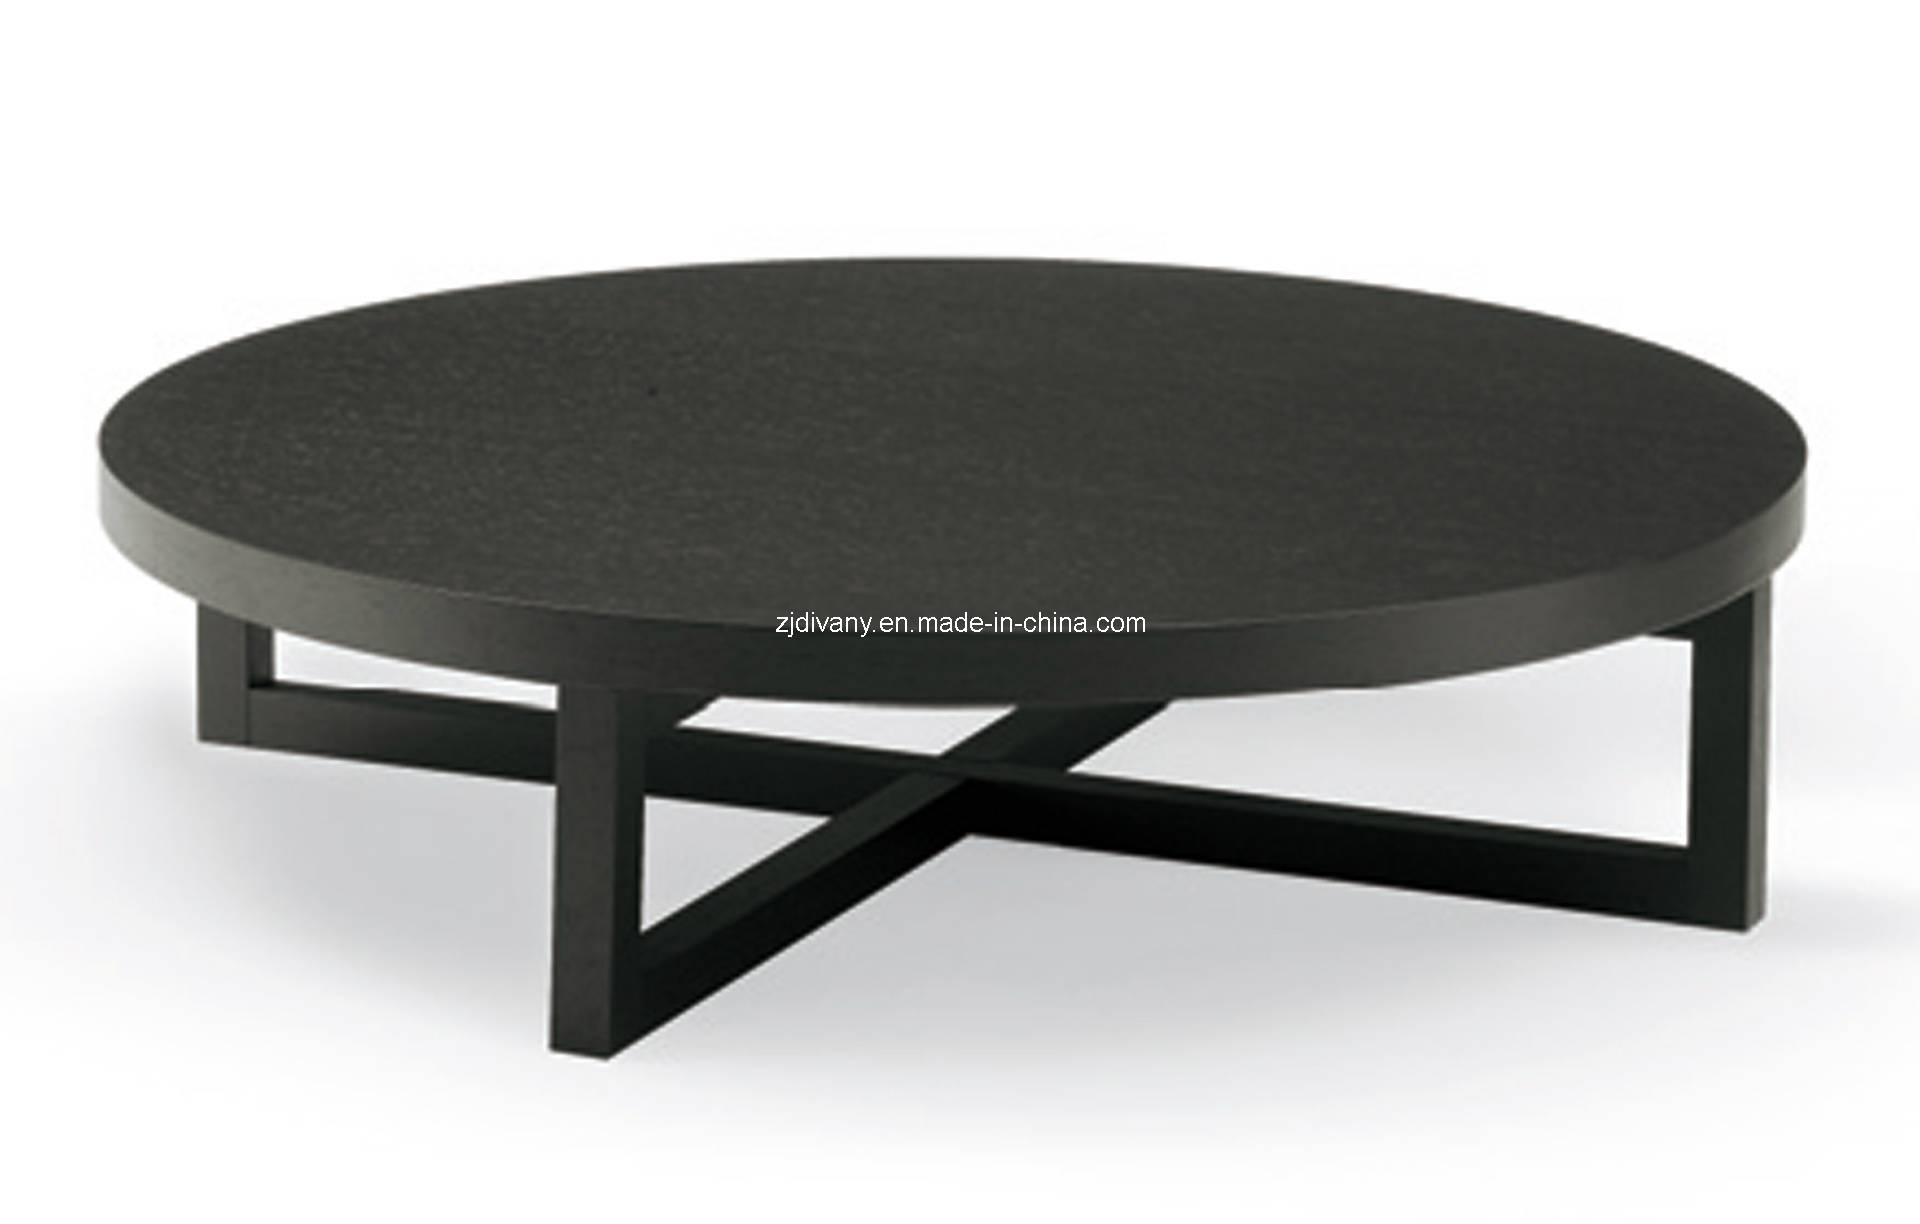 Dark Wood Round Coffee Table | Coffee Tables Decoration in Dark Wood Round Coffee Tables (Image 19 of 30)